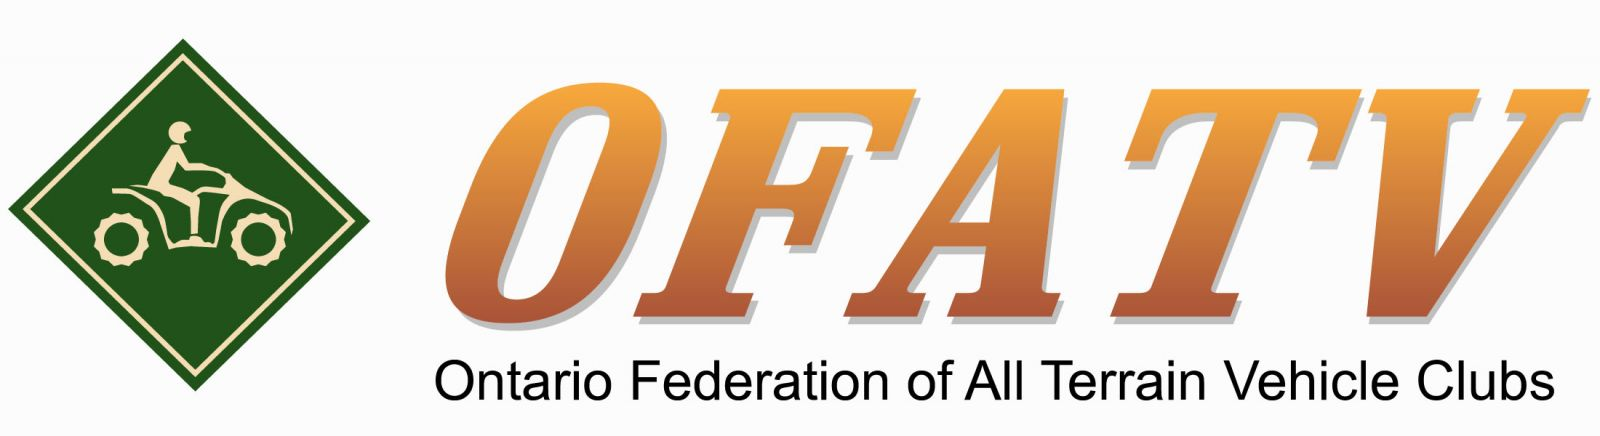 ontario federation of all-terrain vehicle clubs